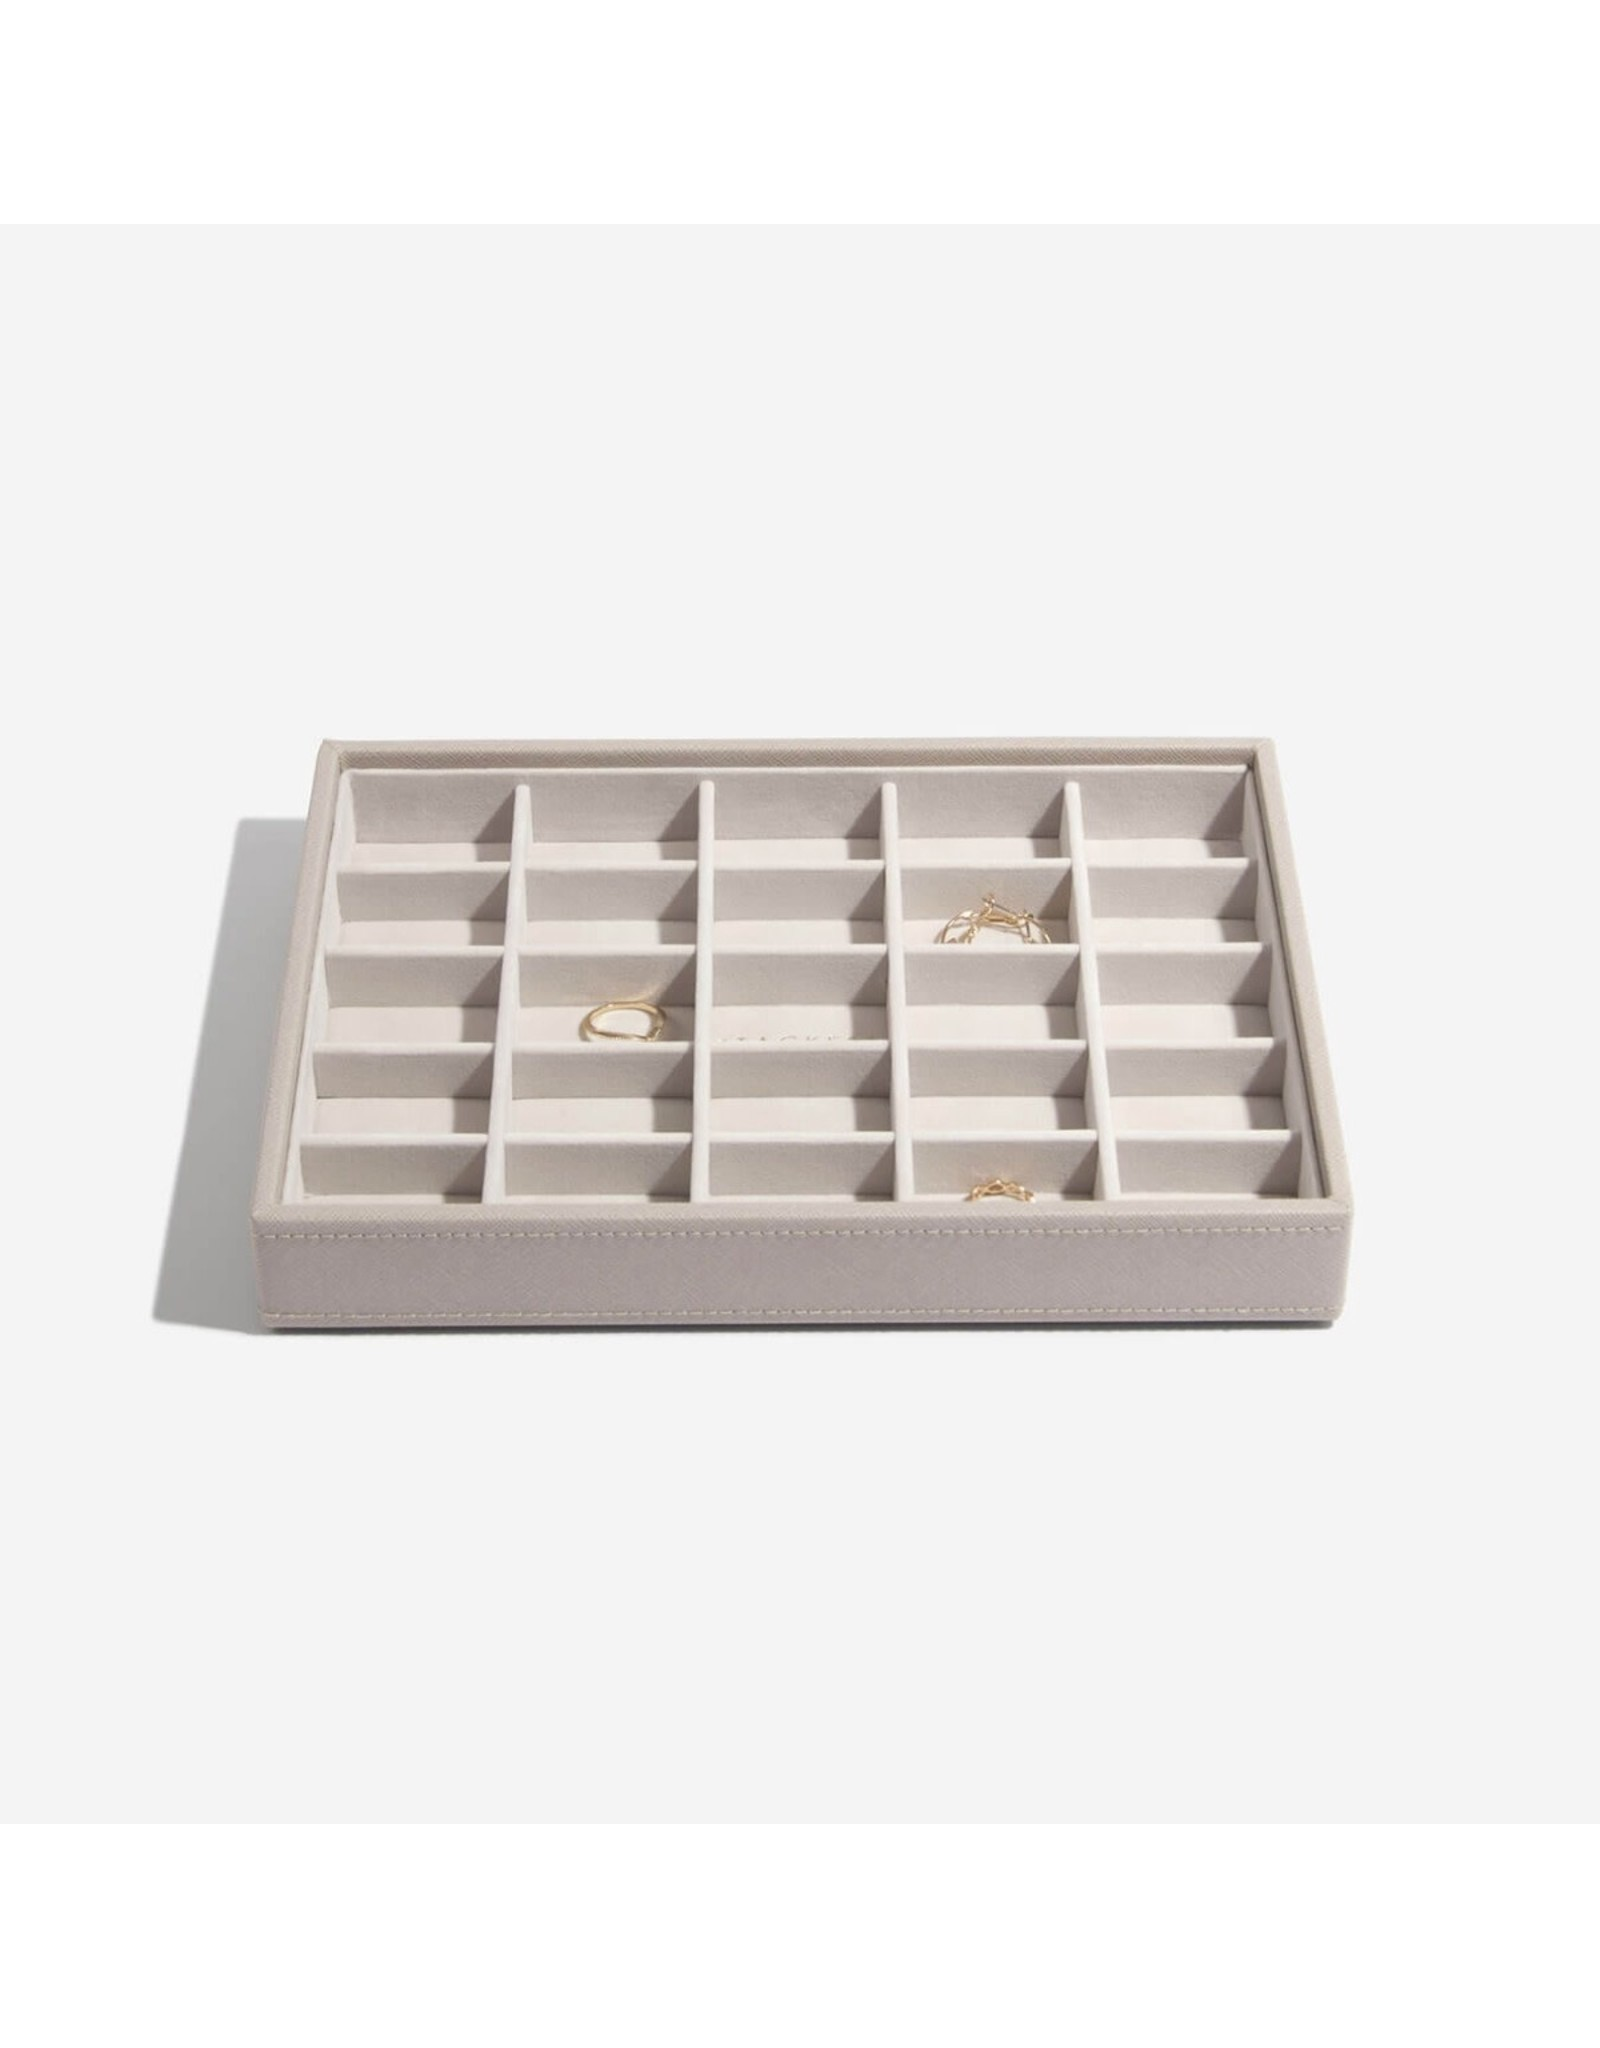 Stackers Taupe - Classic - 25 section